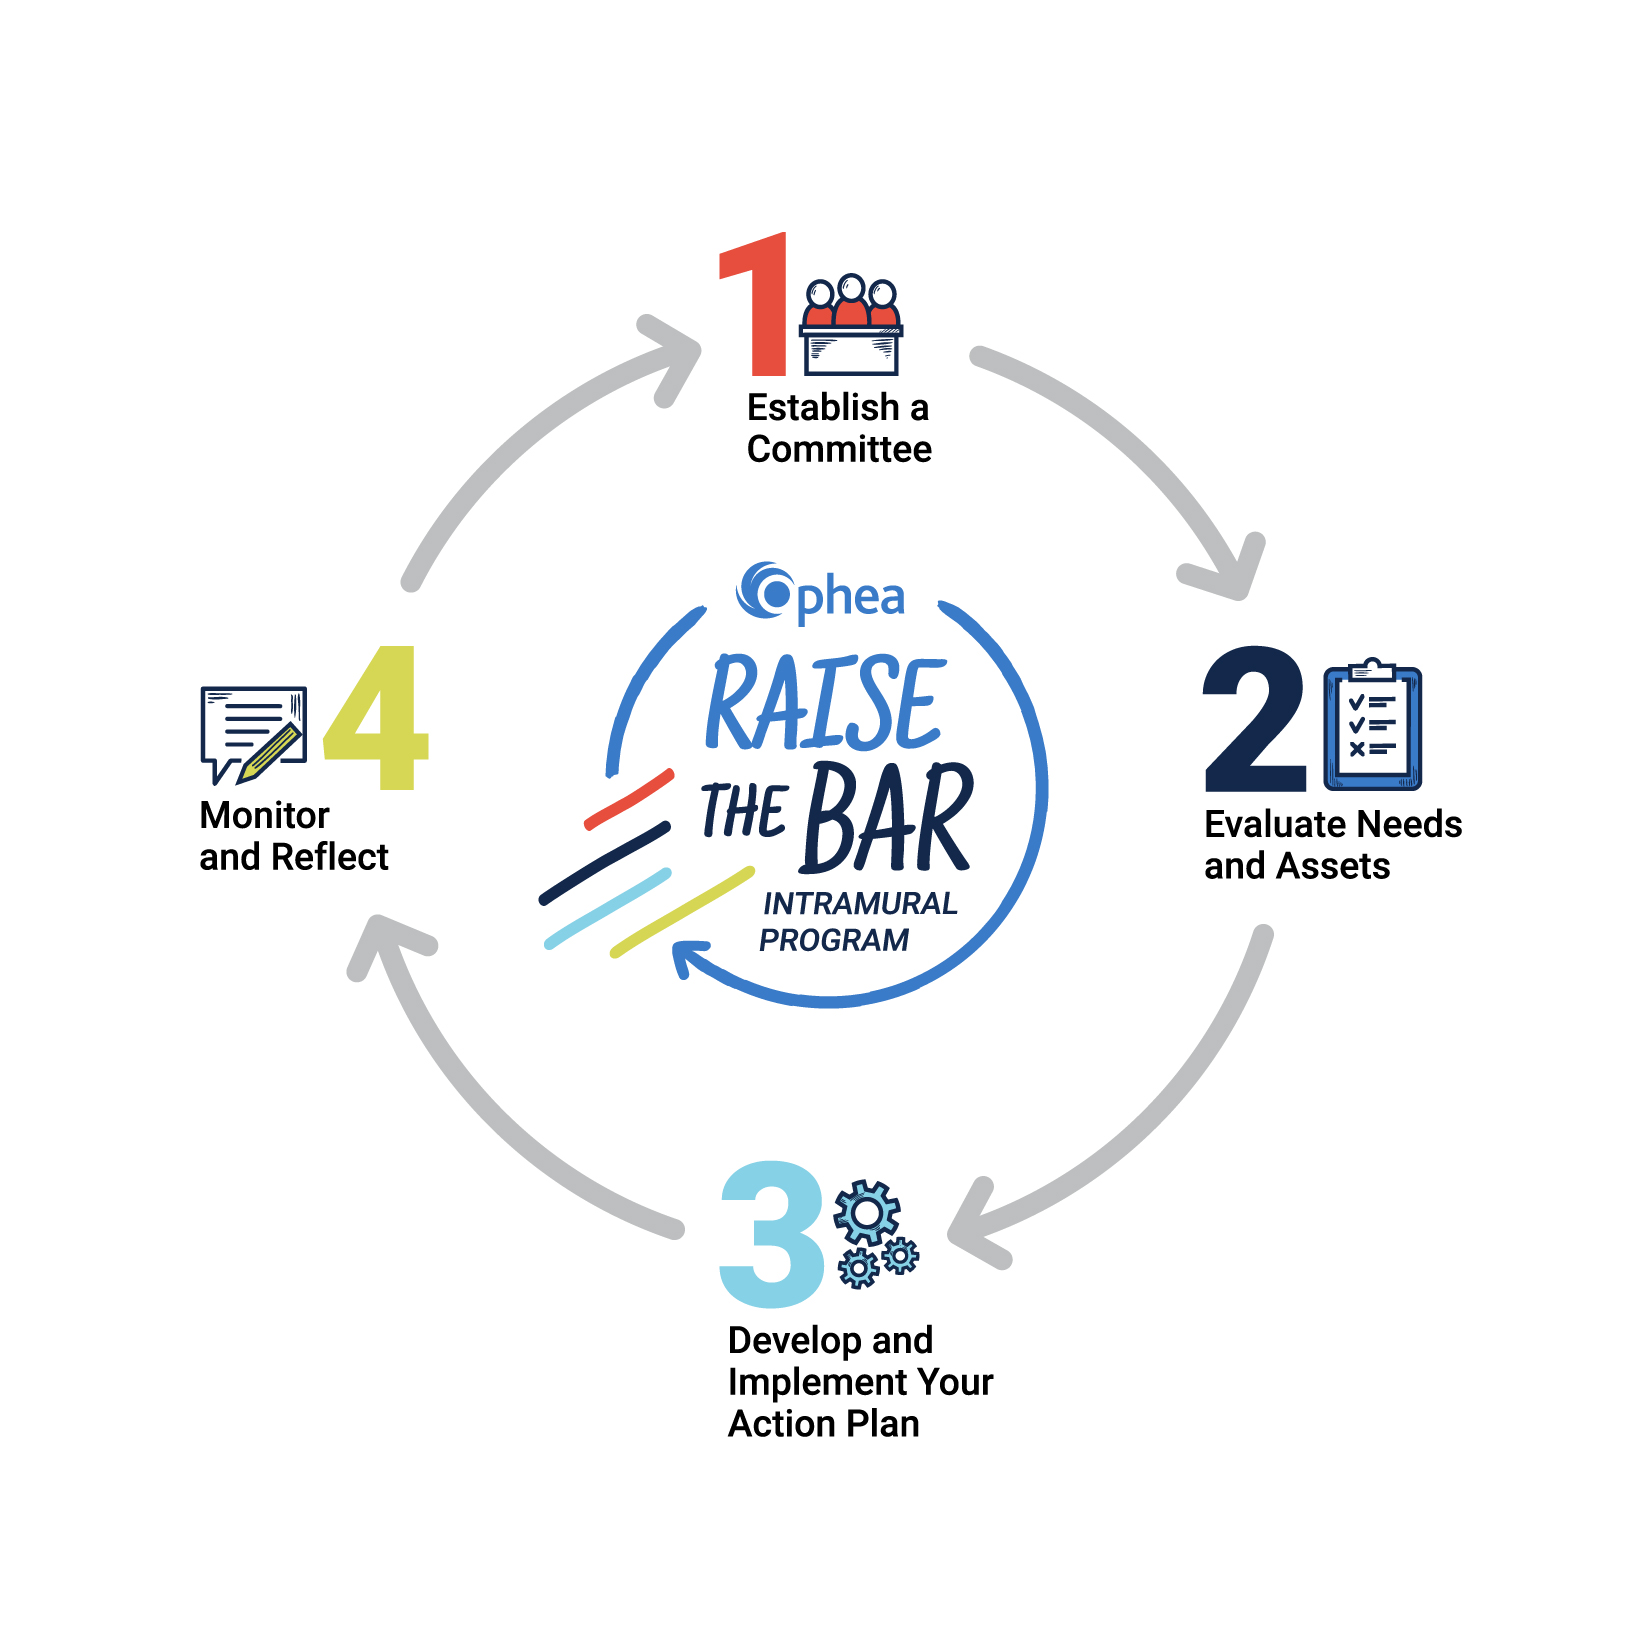 Image of a circular diagram outlining Ophea's Raise the Bar Intramural Program 4-step process. Icon 1 at 12 o'clock depicts Step 1 Establish a Committee. Icon 2 at three o'clock depicts Step 2: Evaluate Needs and Assets. Icon 3 at six o'clock depicts Step 3: Develop and Implement Your Action Plan. Icon 4 at nine o'clock depicts Step 4: Monitor and Reflect. End diagram.